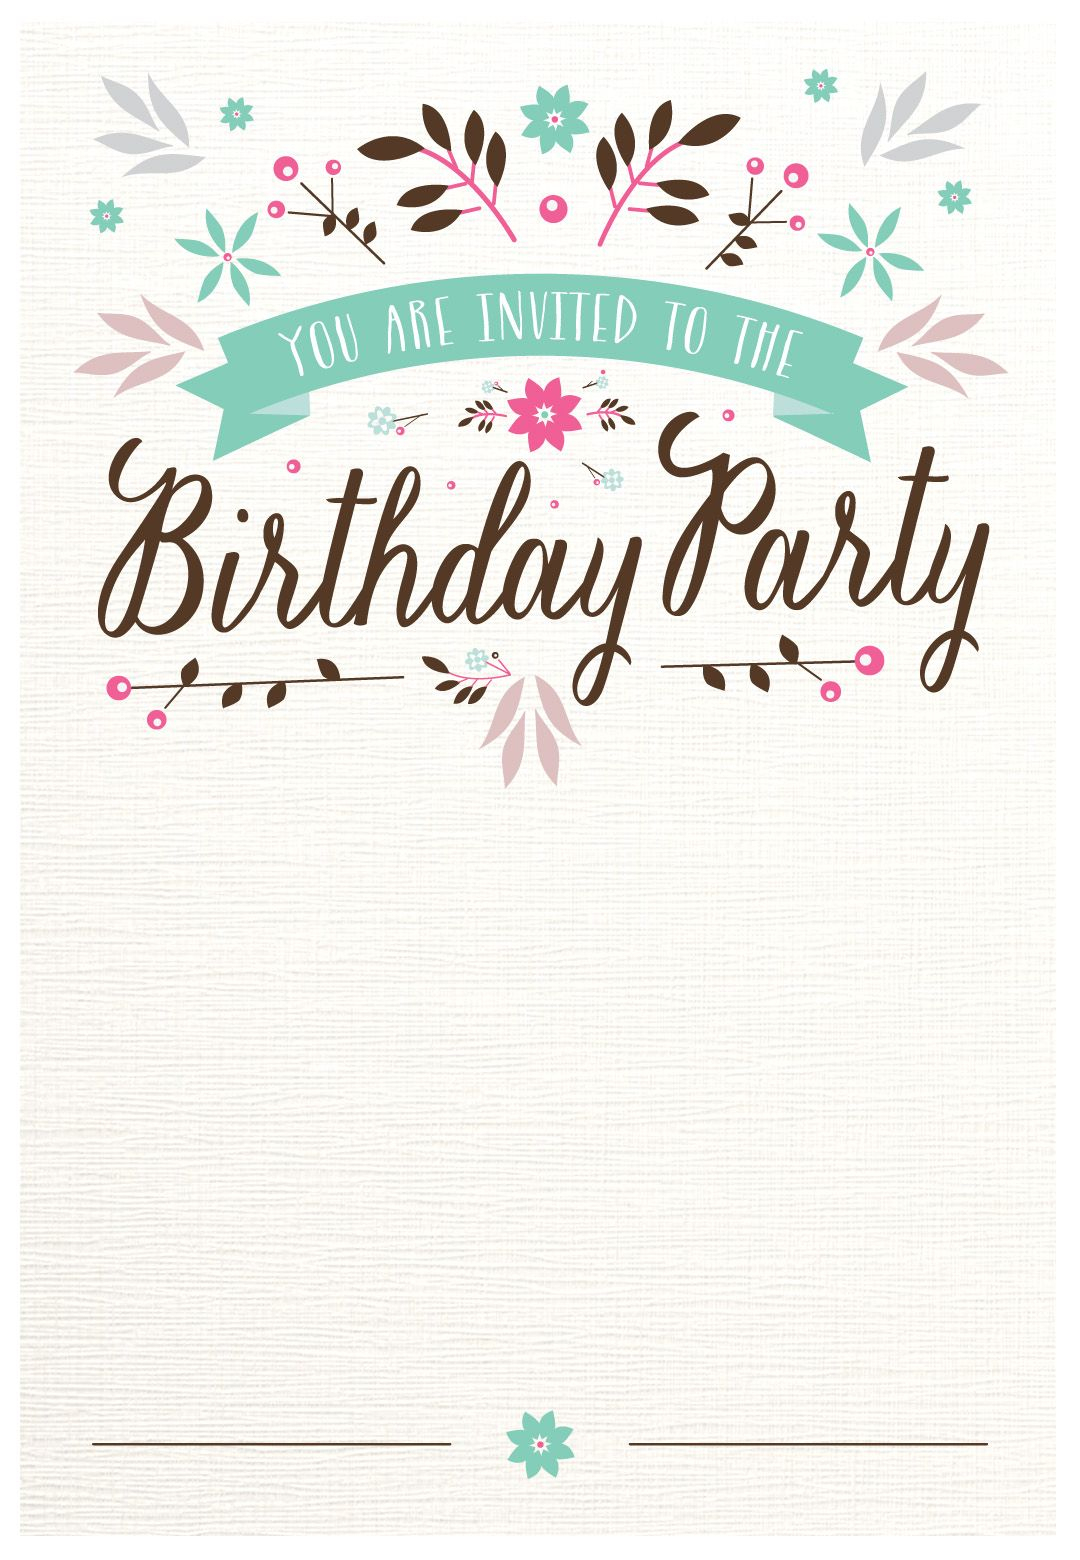 Flat Floral - Free Printable Birthday Invitation Template - Free Printable Birthday Invitations Pinterest